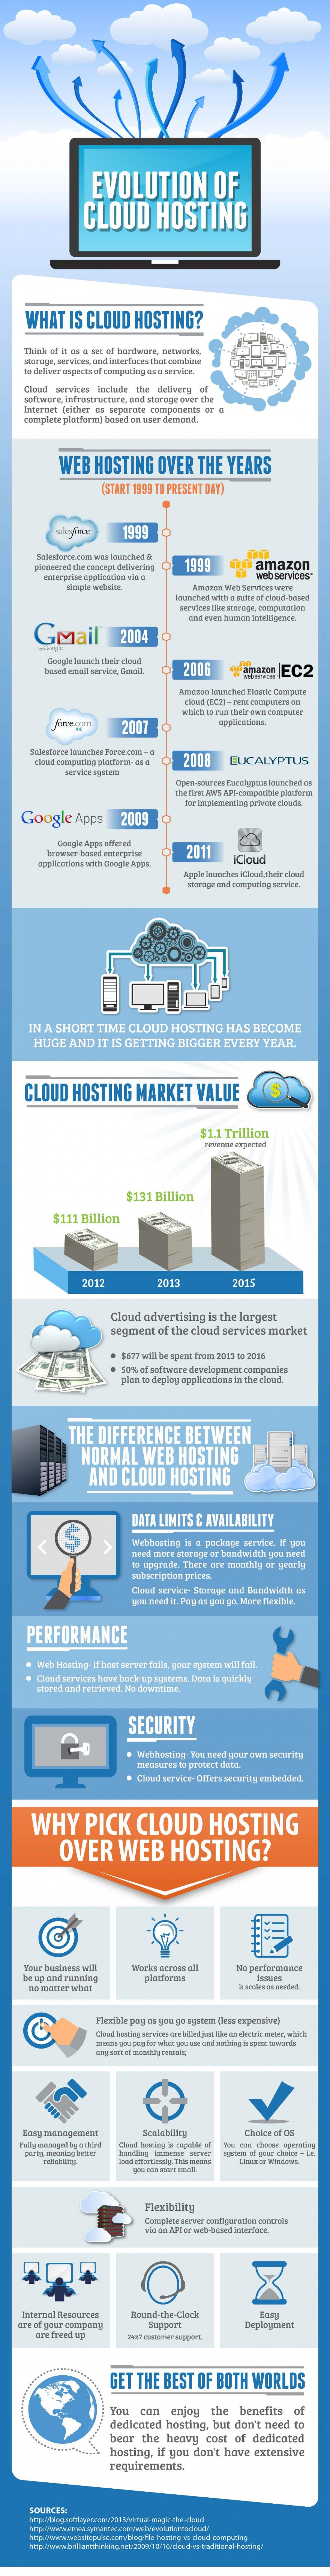 Evolution of Cloud hosting Infographic Infographic